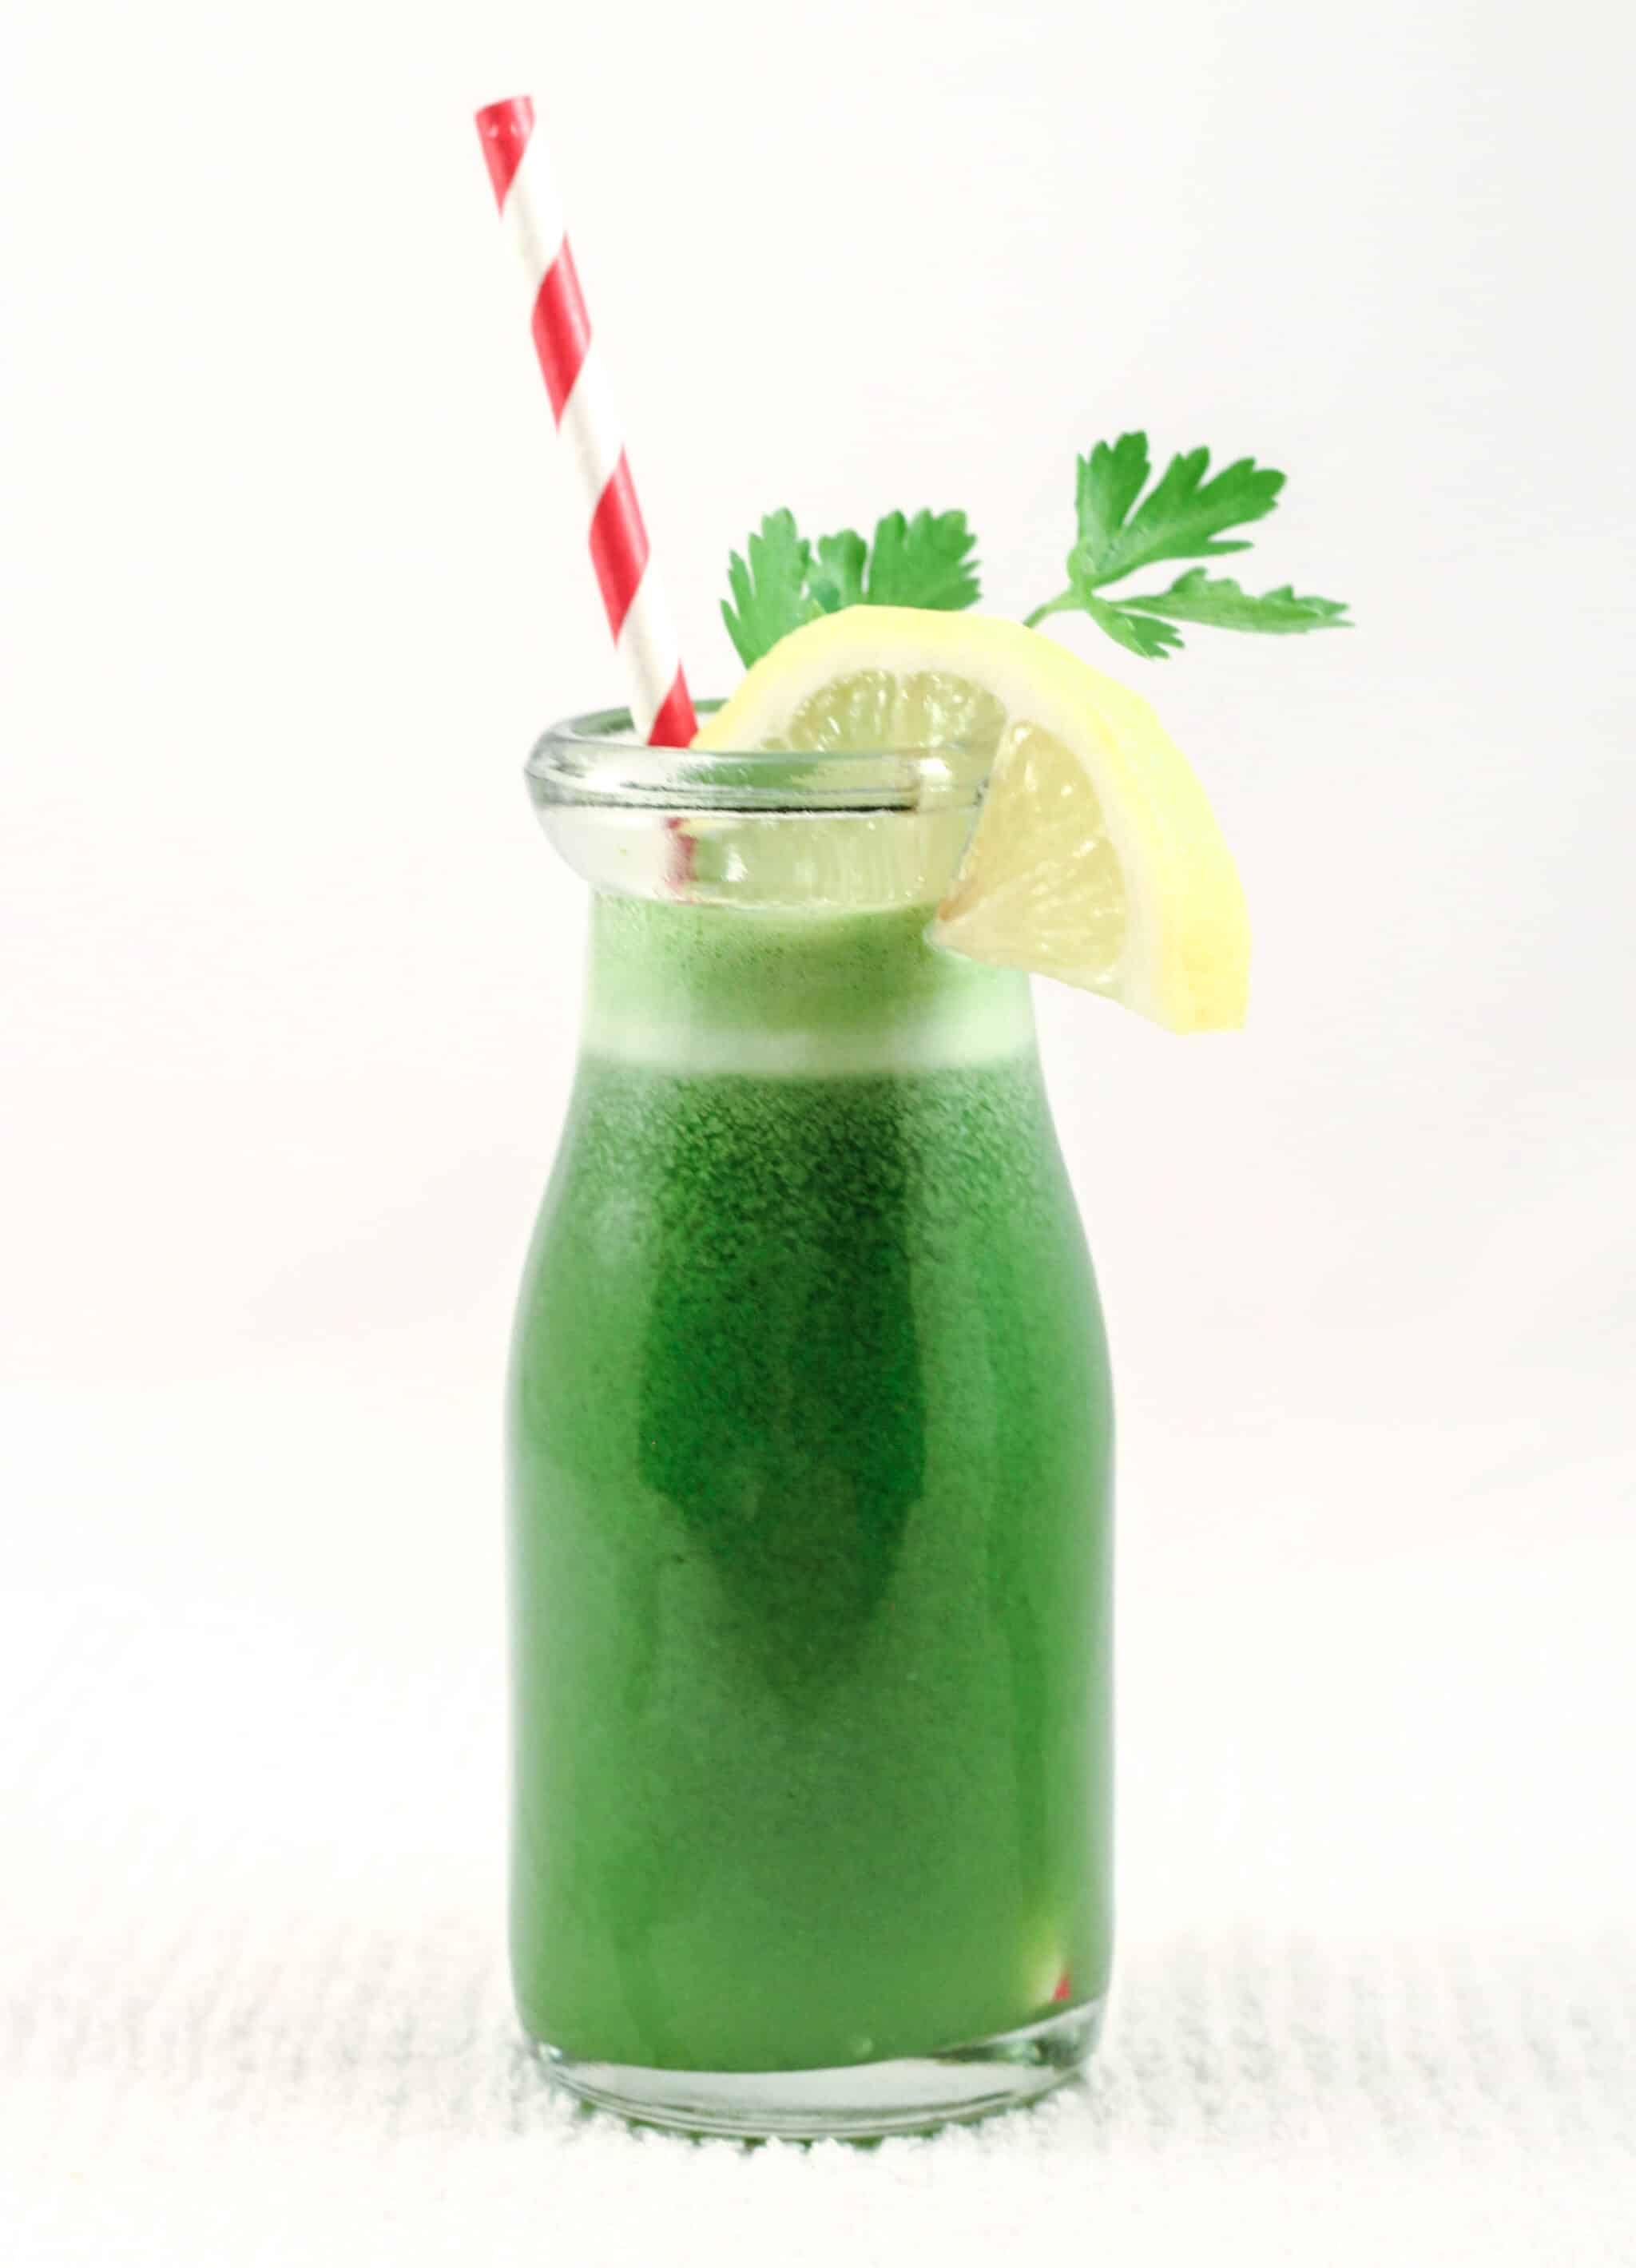 My Everyday Healthy Green Juice